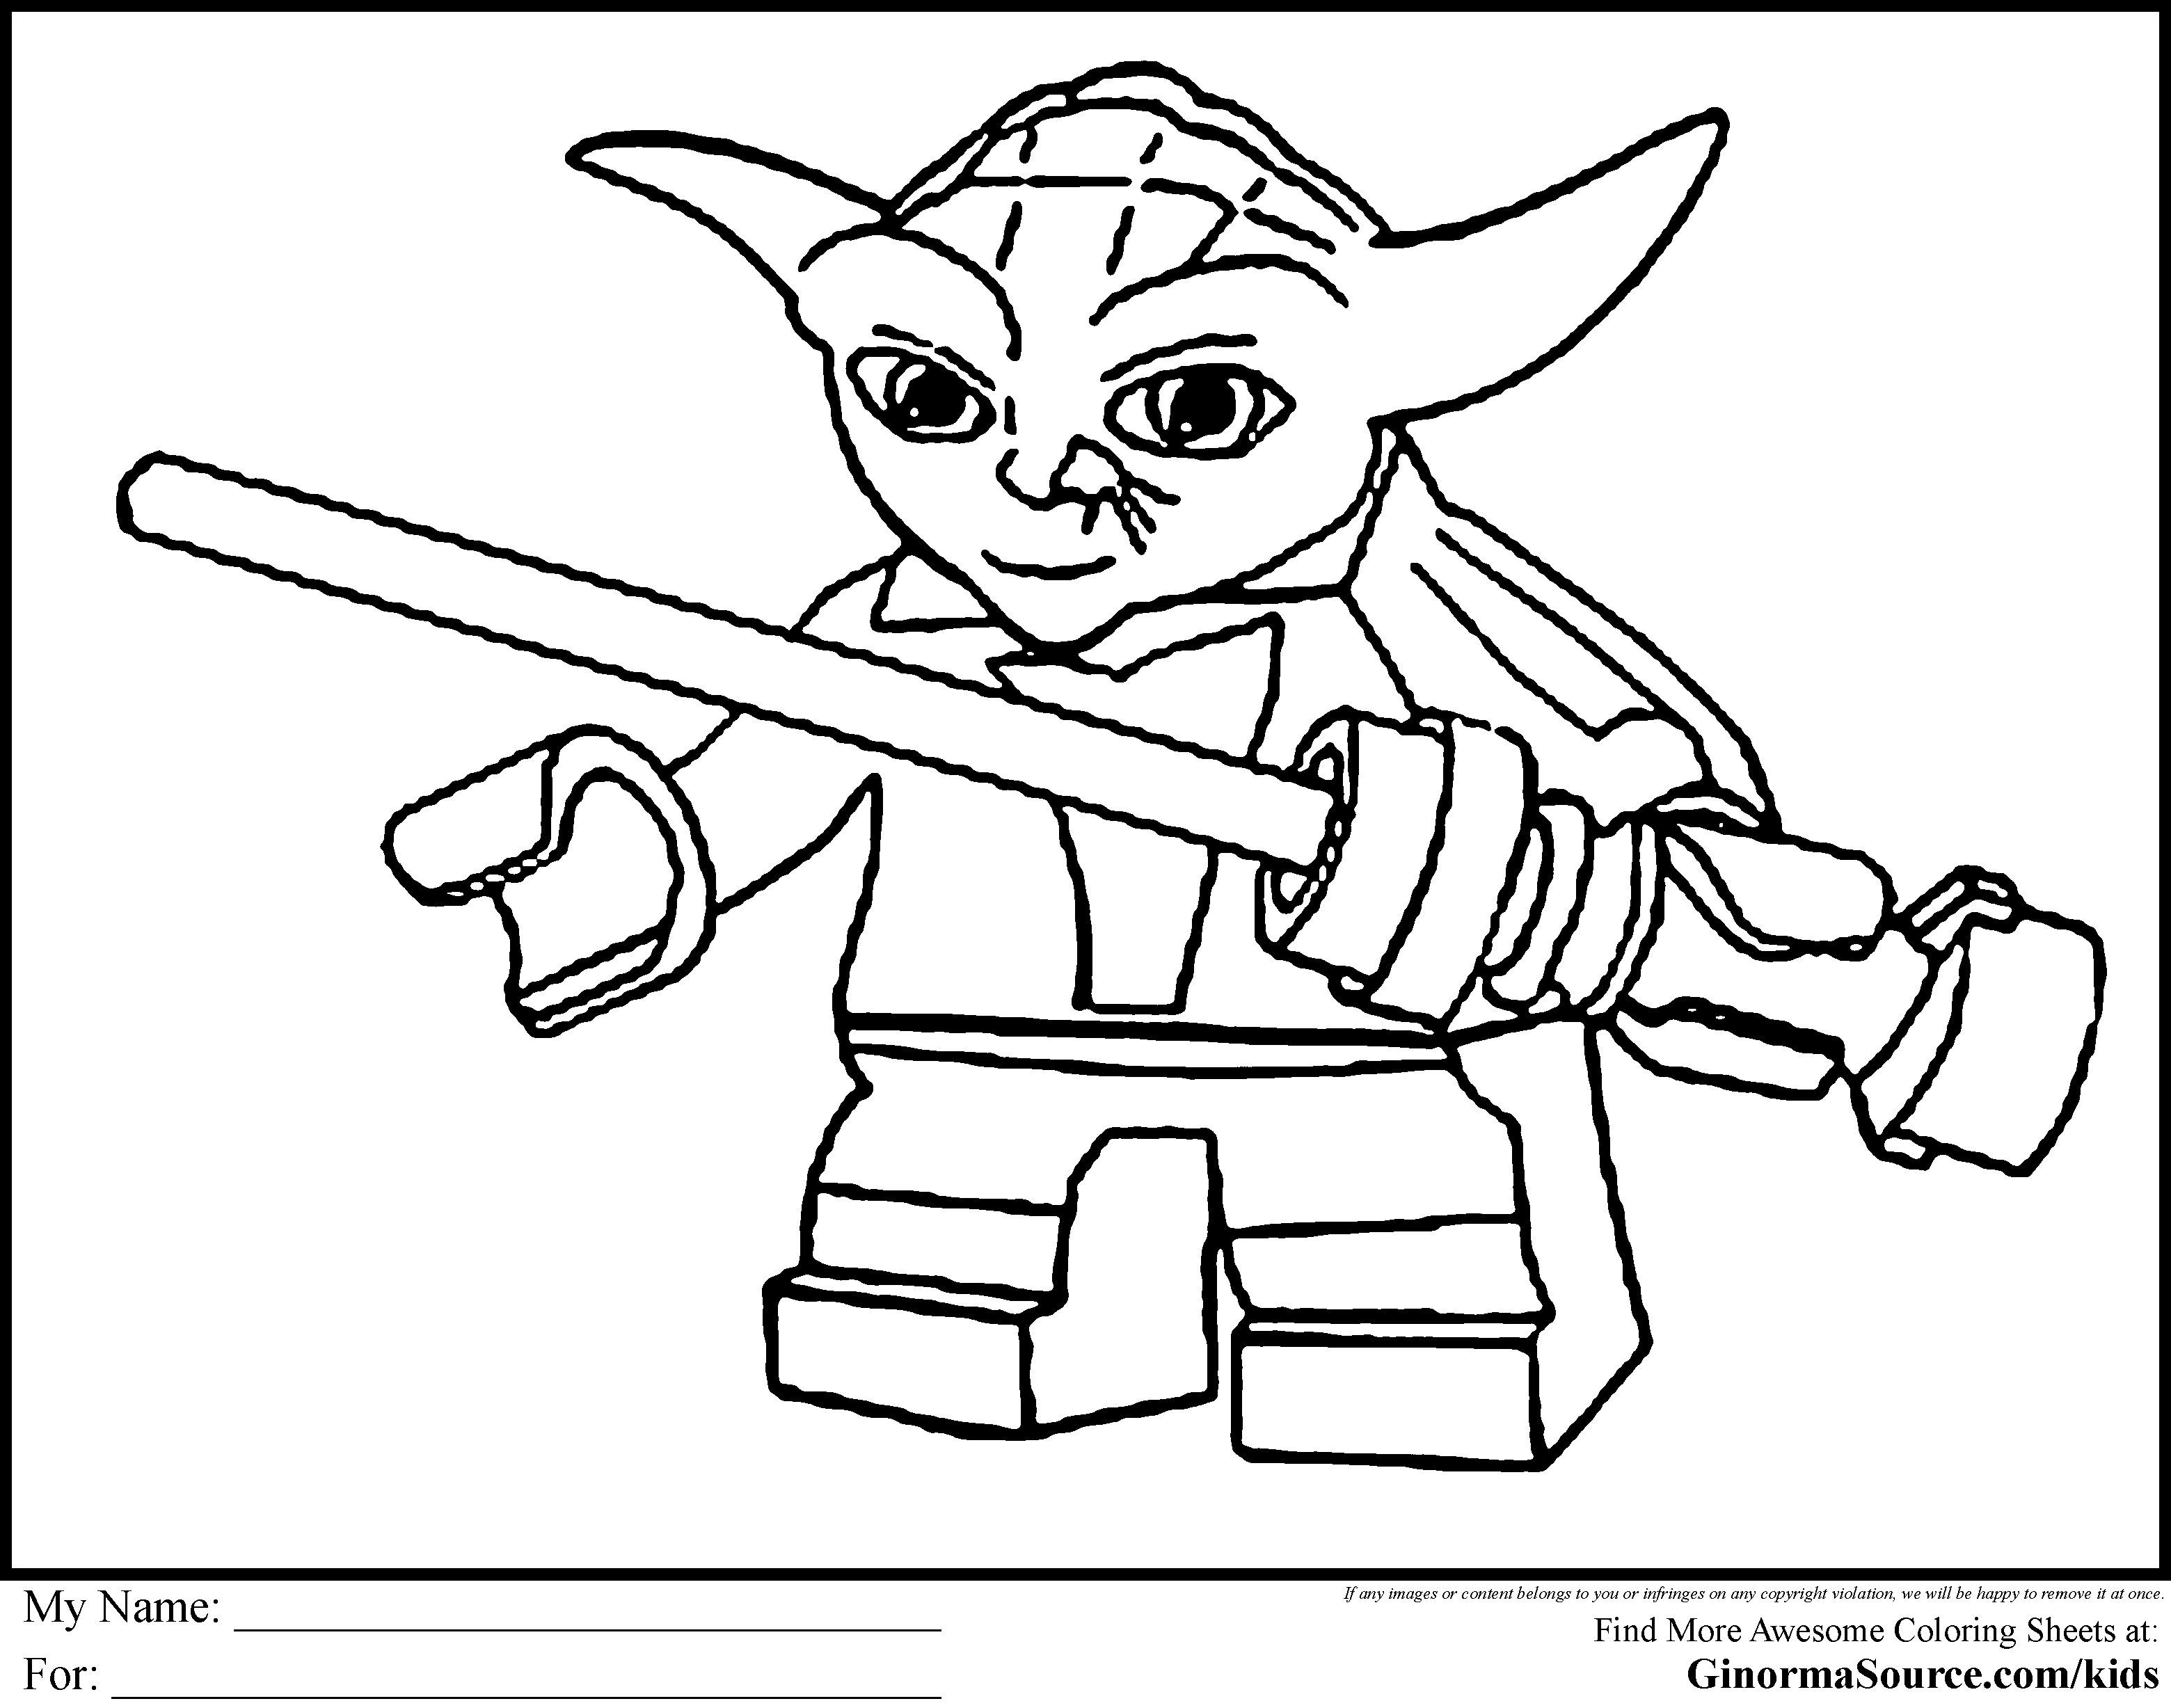 Lego coloring pages to print lego coloring pages lego darth - Lego Star Wars Darth Vader Coloring Pages Star Wars Lego Releases